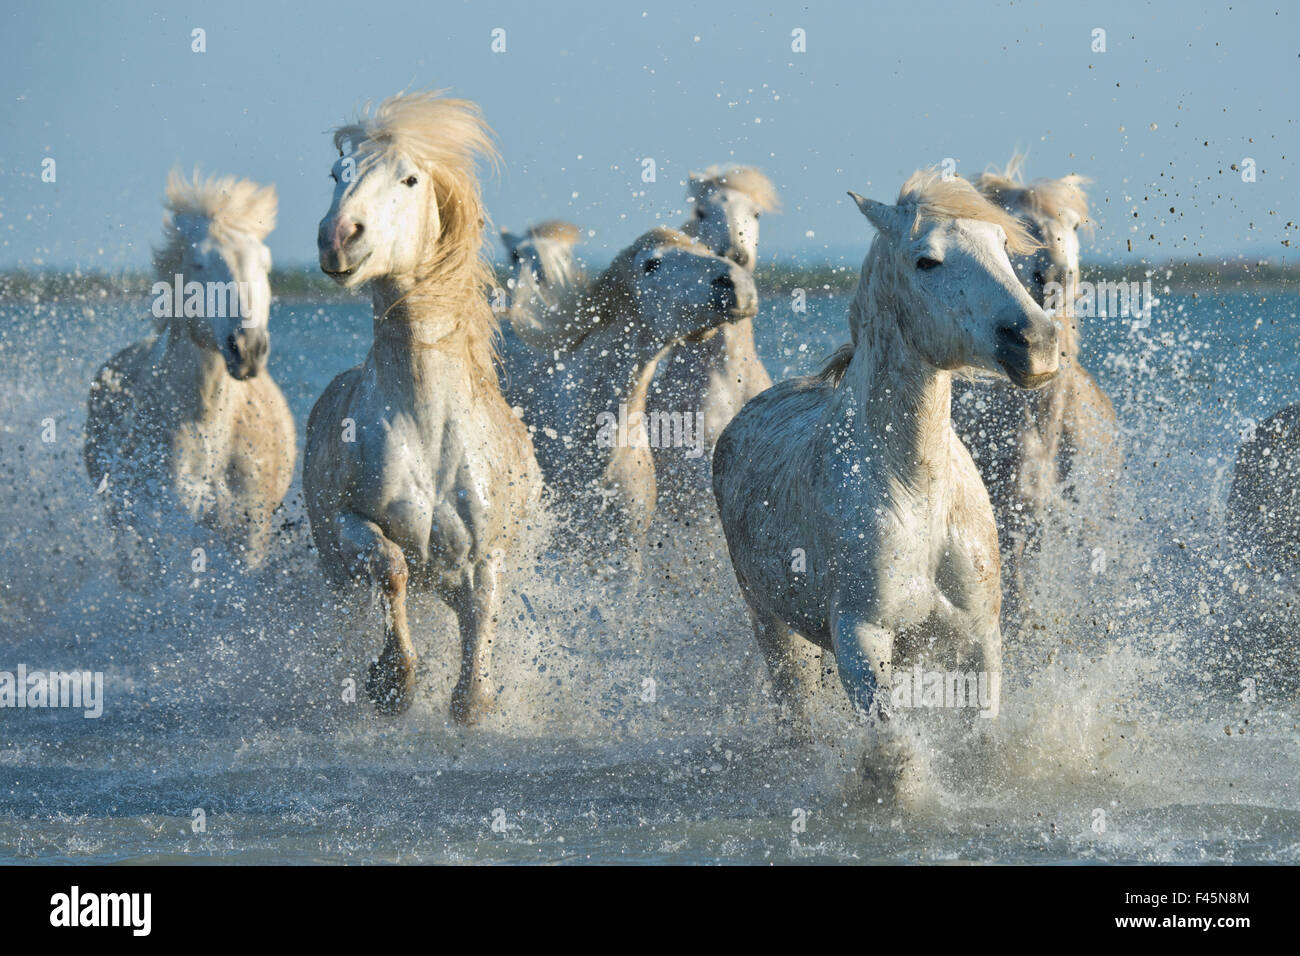 Grey Camargue horses, galloping through water in the Camargue, France, April. - Stock Image